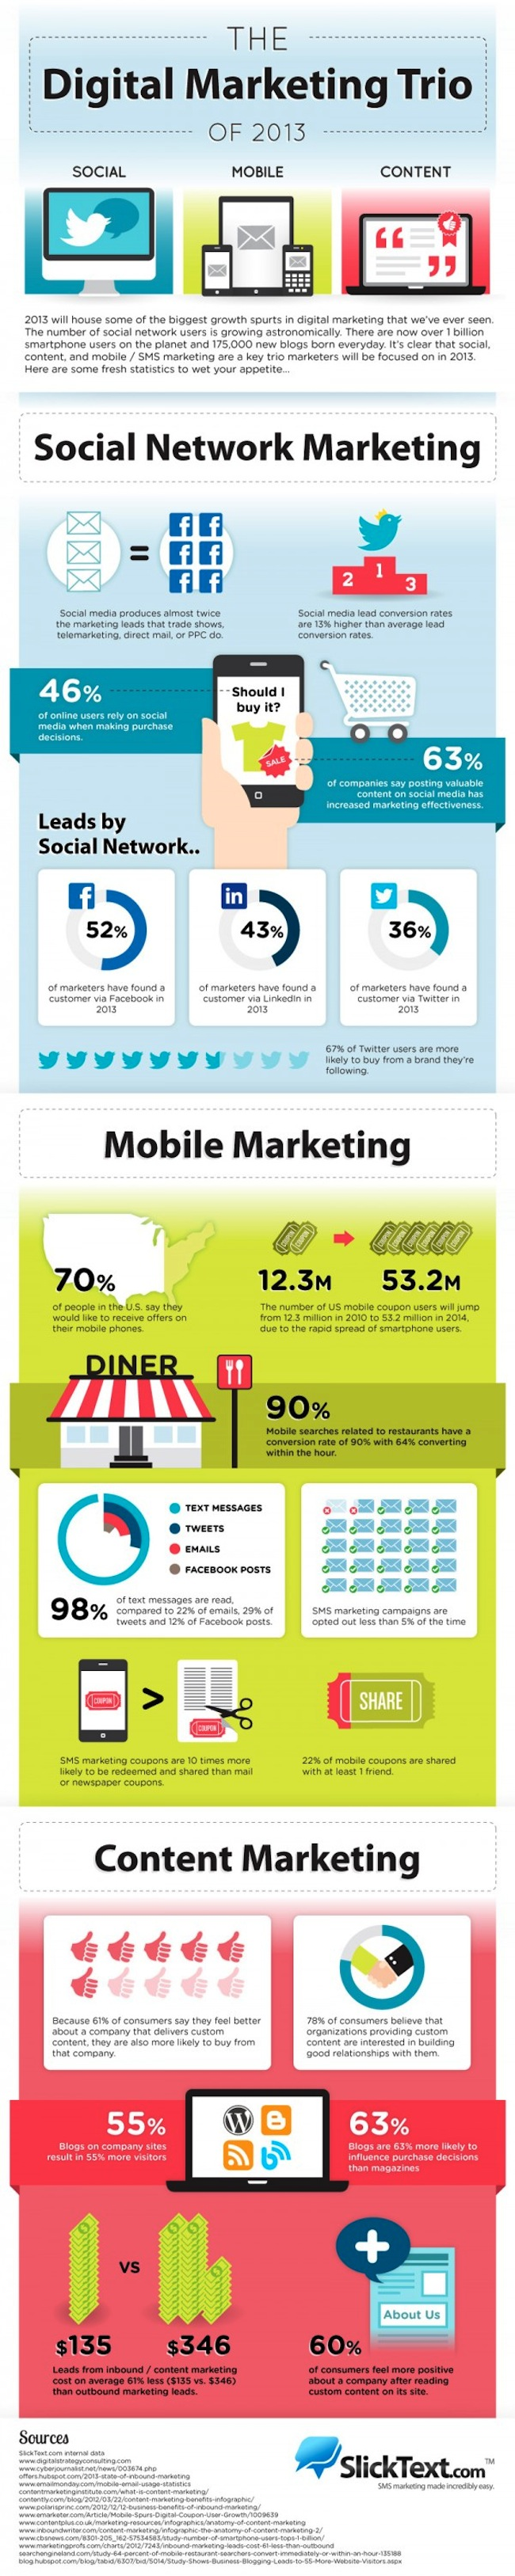 infographie social content mobile